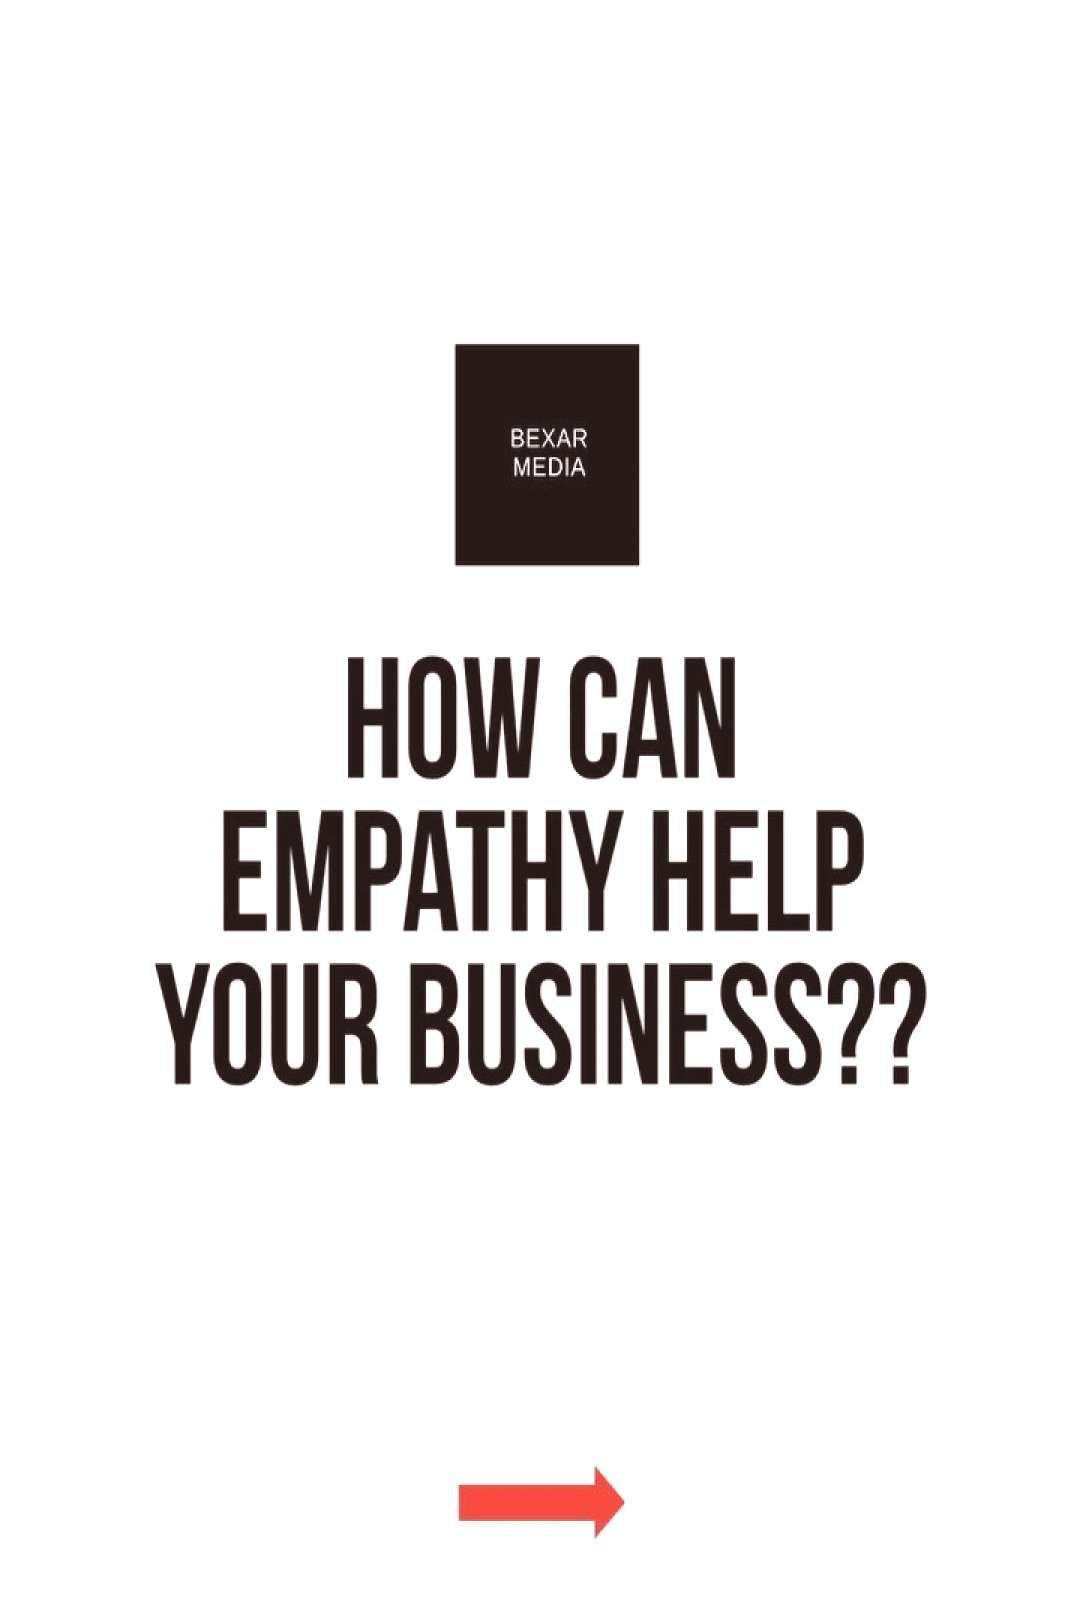 Empathy defines me and what Bexar Media represents. This helps me